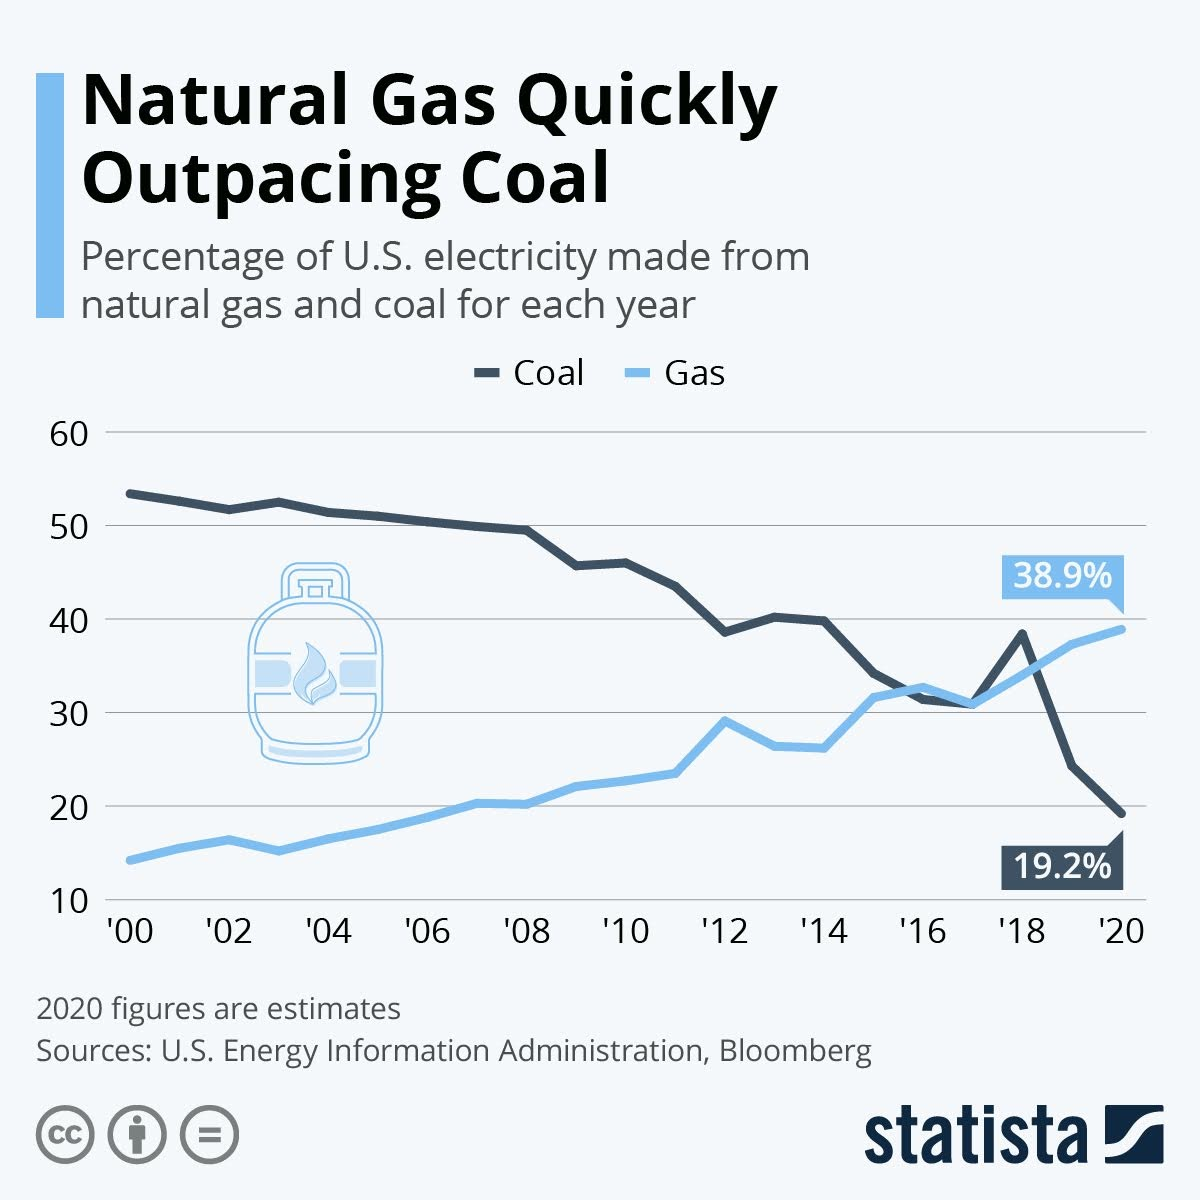 natural-gas-quickly-outpacing-coal-infographic